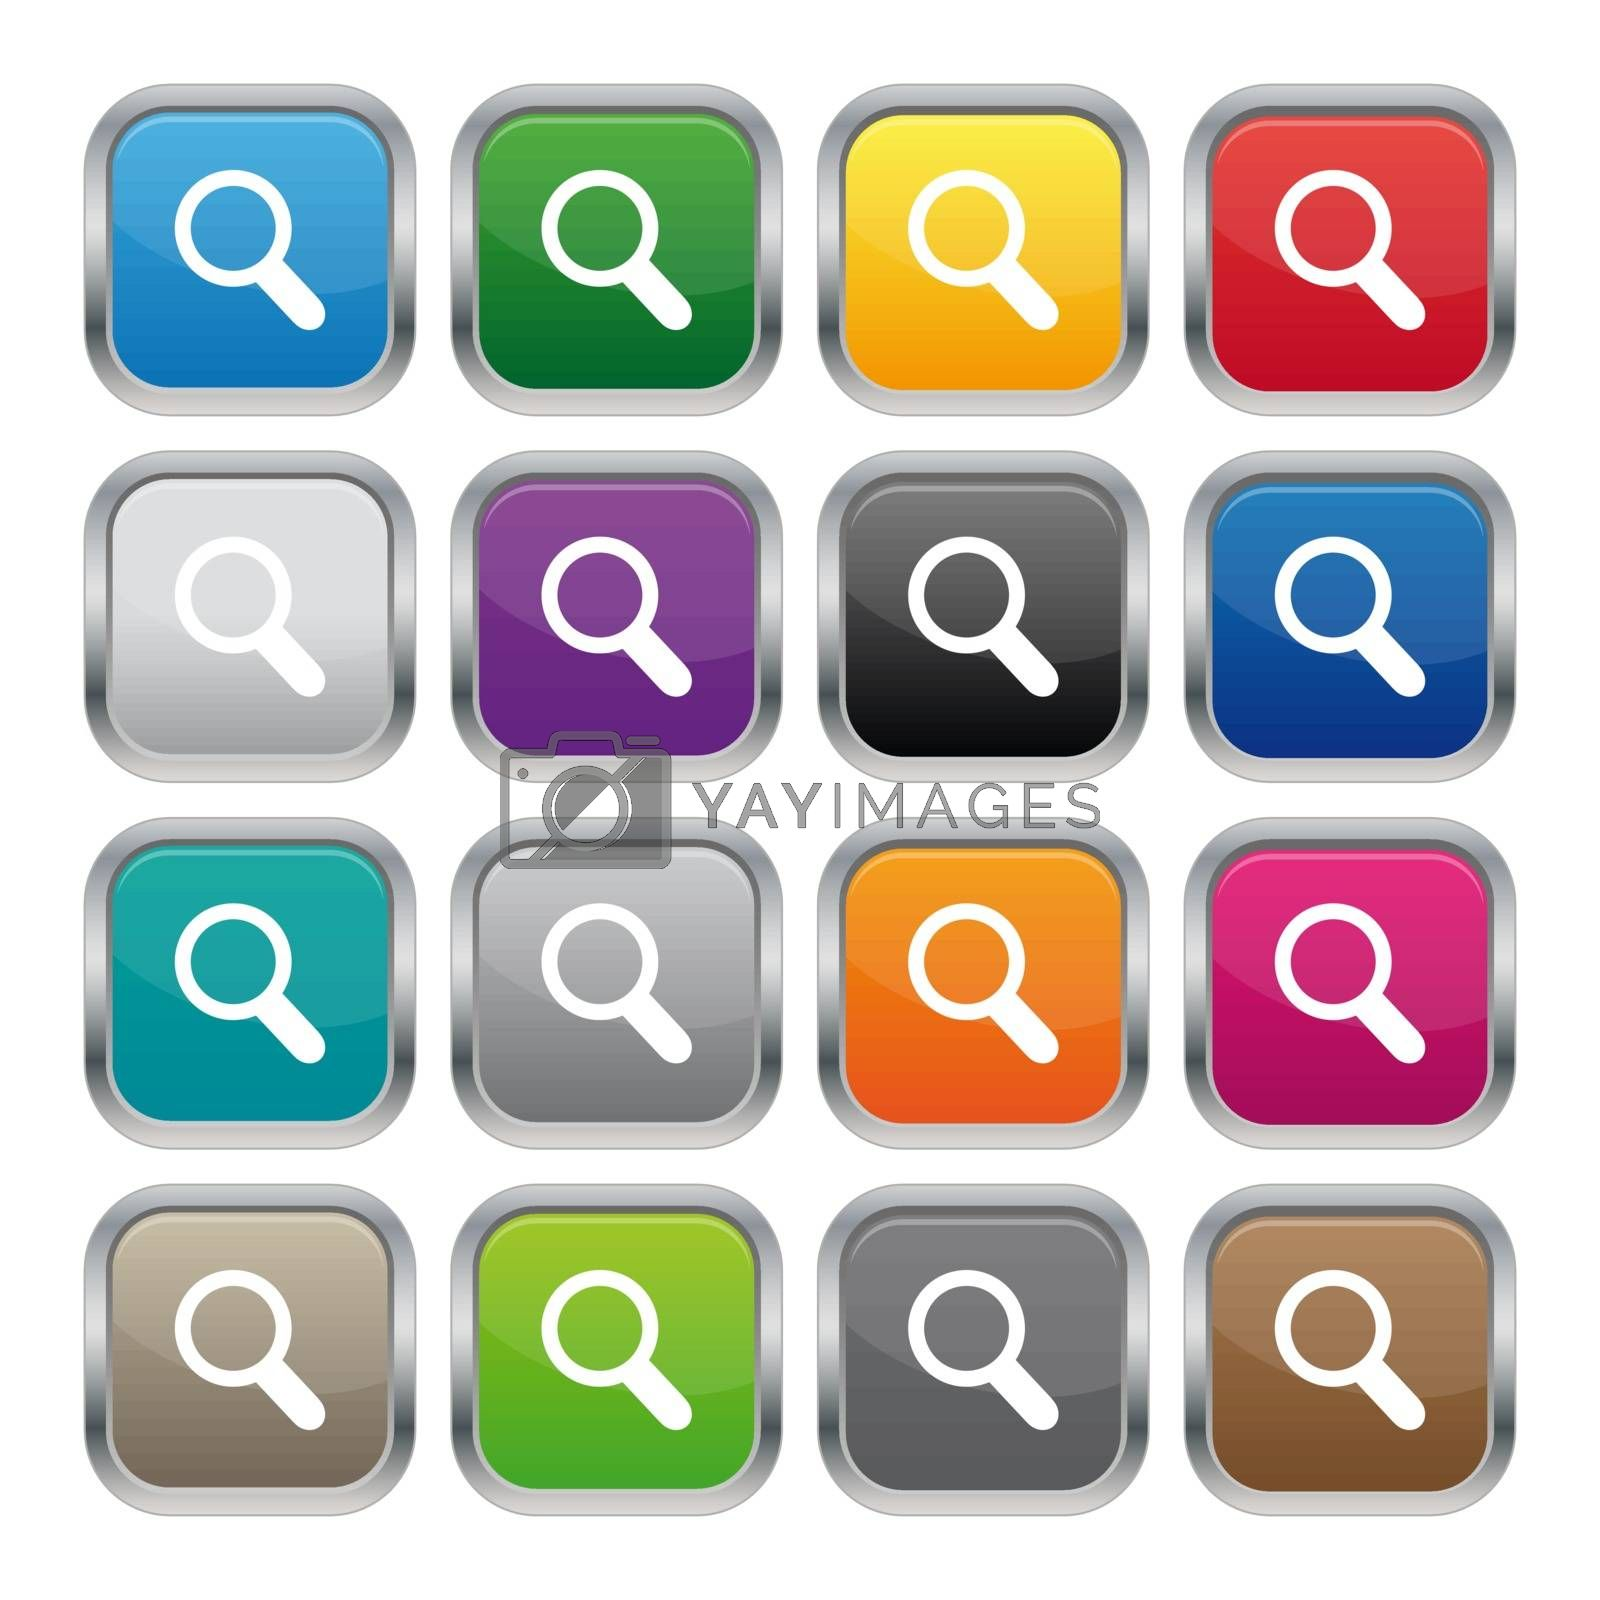 Royalty free image of Search metallic square buttons by simo988